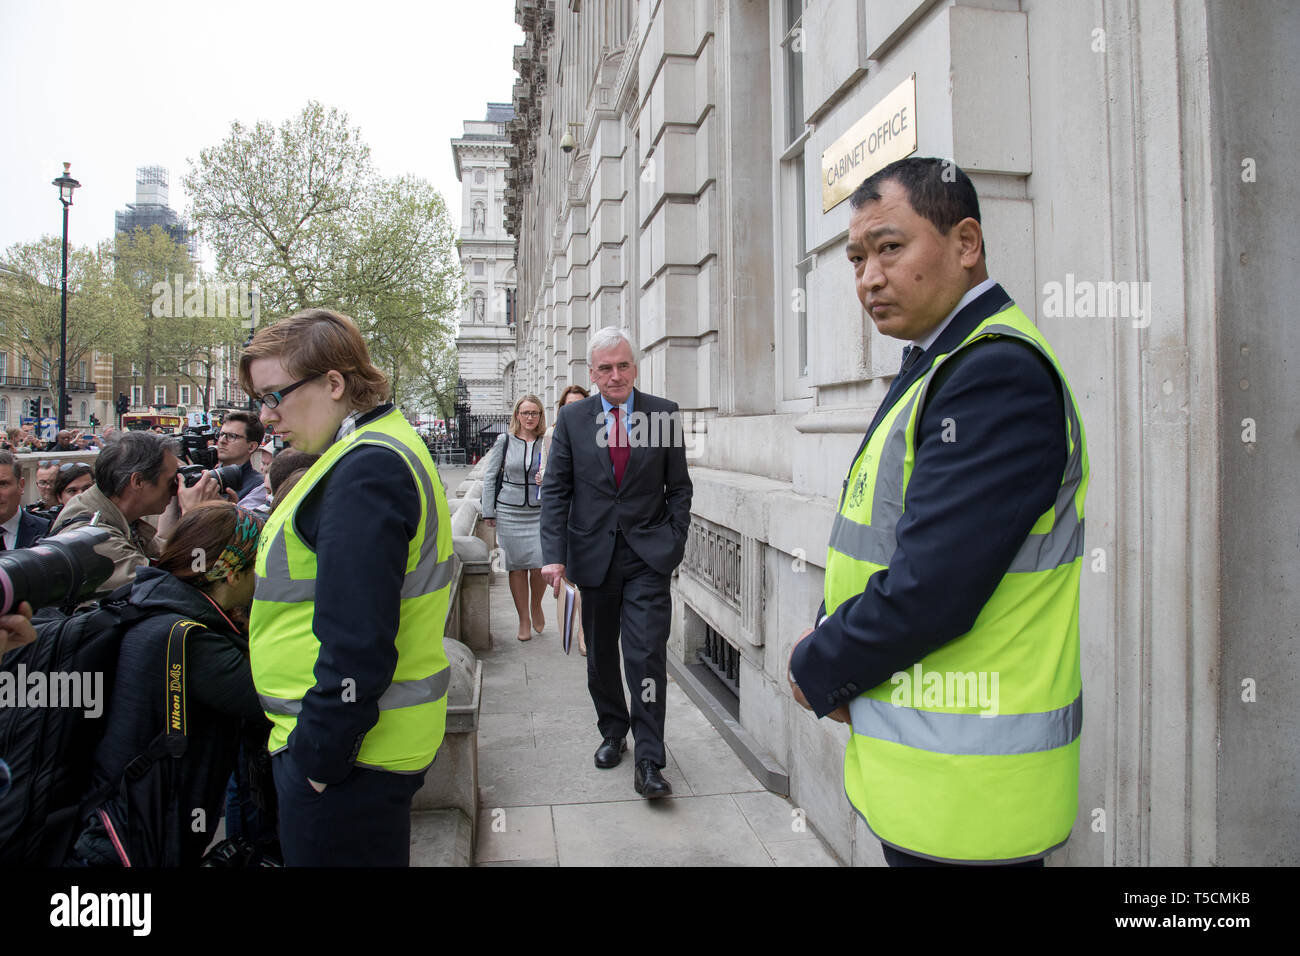 Cabinet Office, London, UK. 23 April 2019. (L-R)  John McDonald followed behind by Rebecca Long-Bailey, and a Labour aide walk in to Cabine Office to resume Brexit talks  with the government. Credit: Santo Basone/Alamy Live News - Stock Image